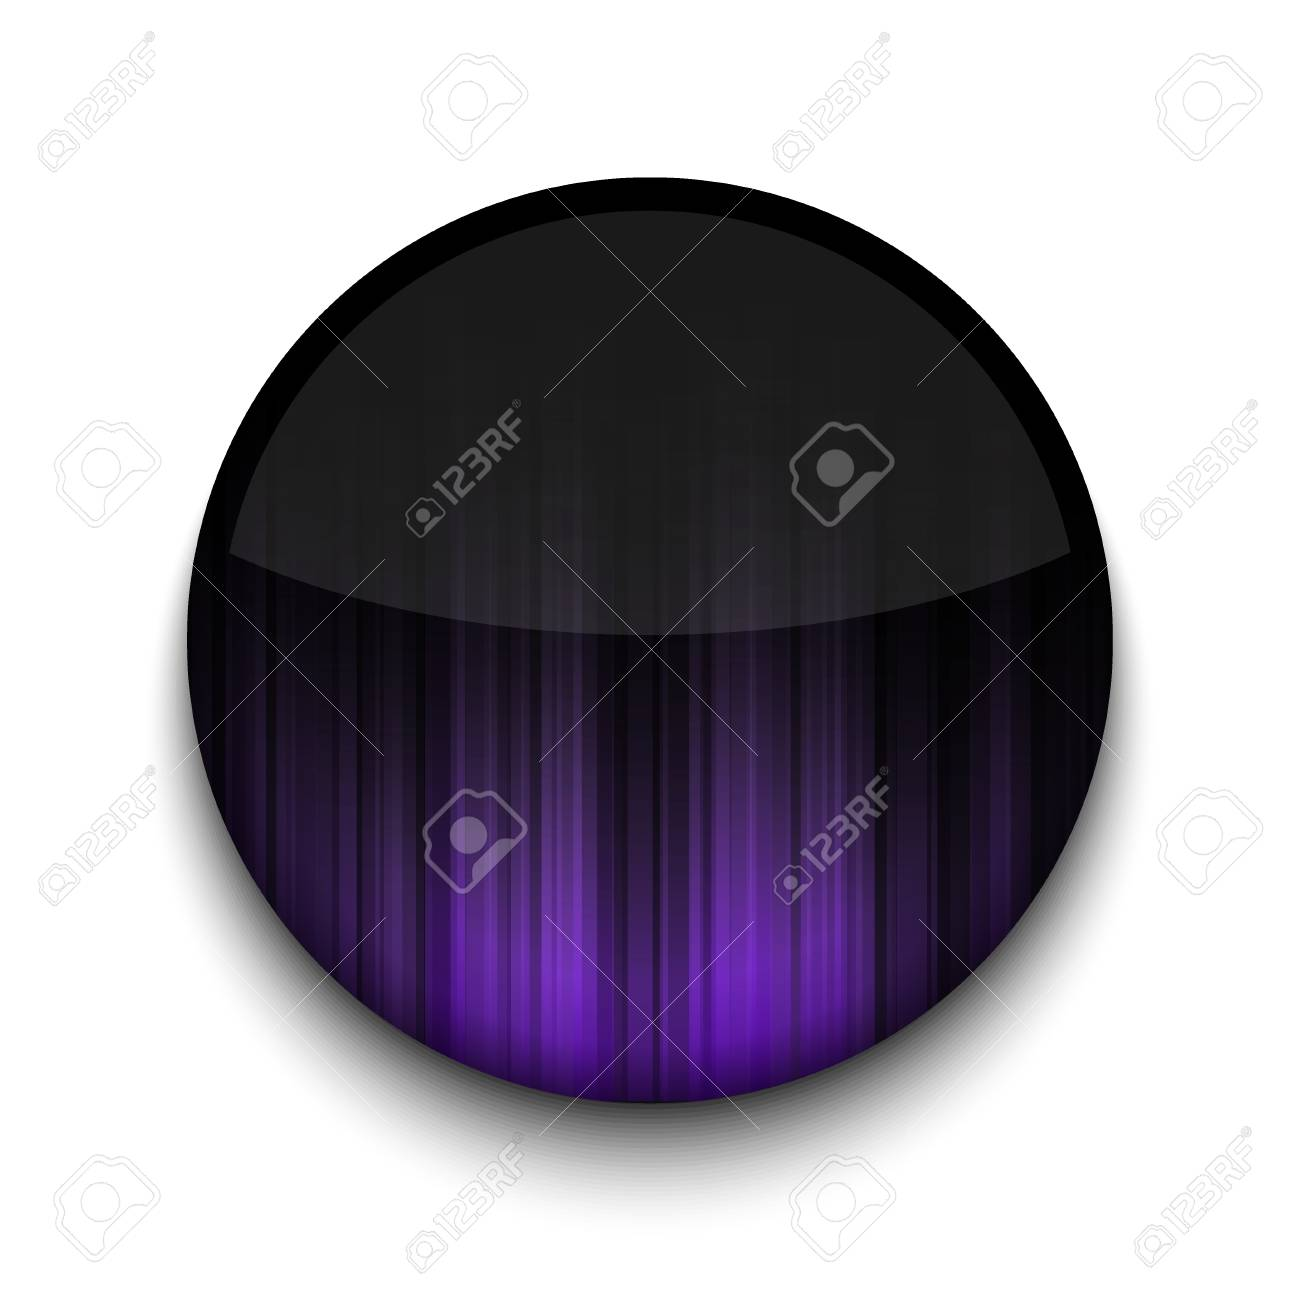 Vector abstract circle app icon on white background. Stock Vector - 16200200